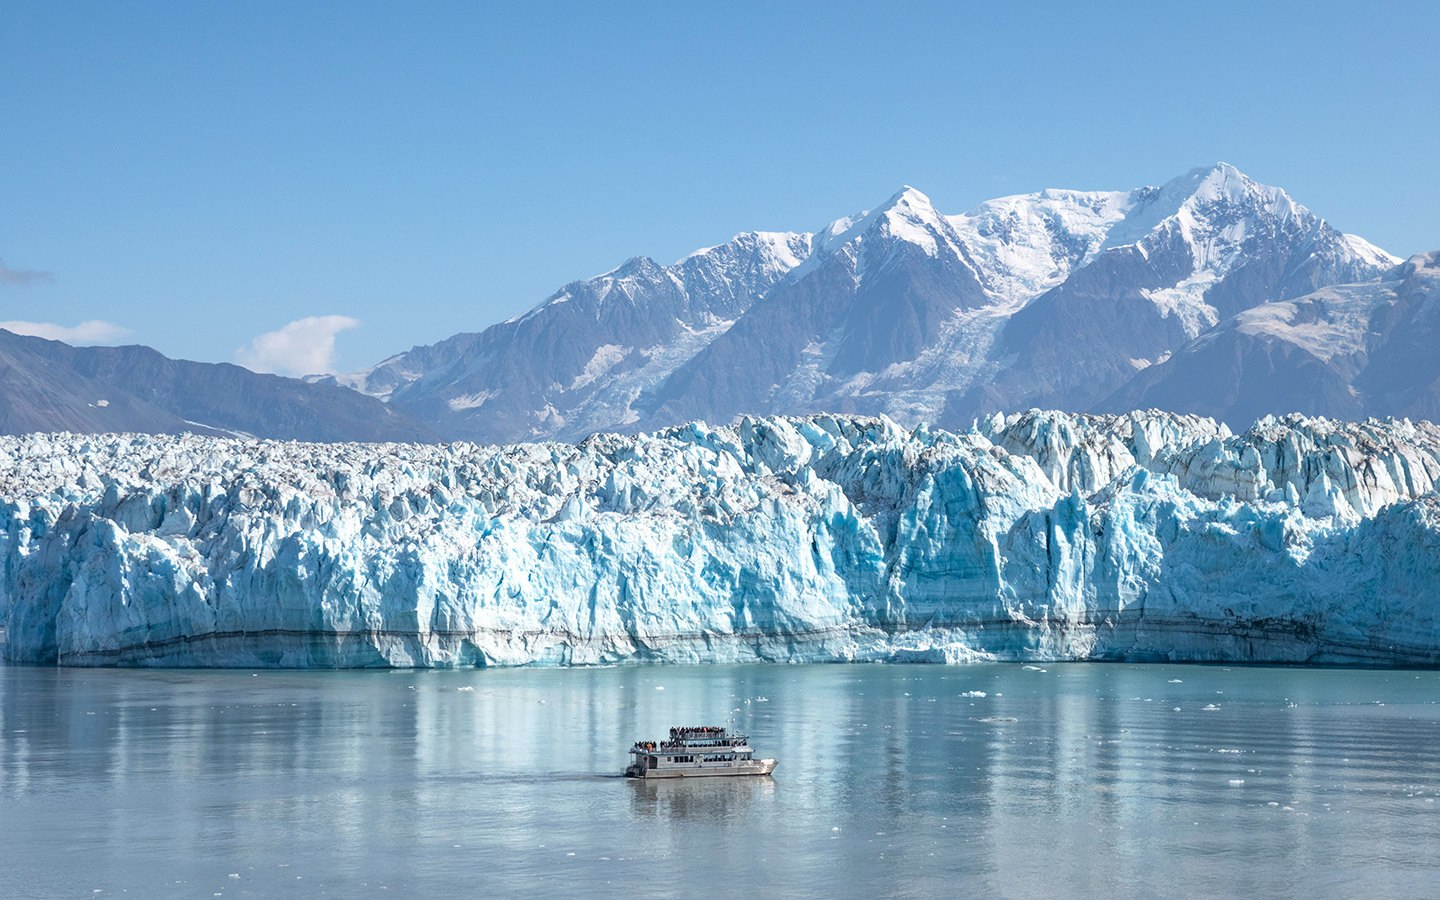 The Hubbard Glacier in Alaska